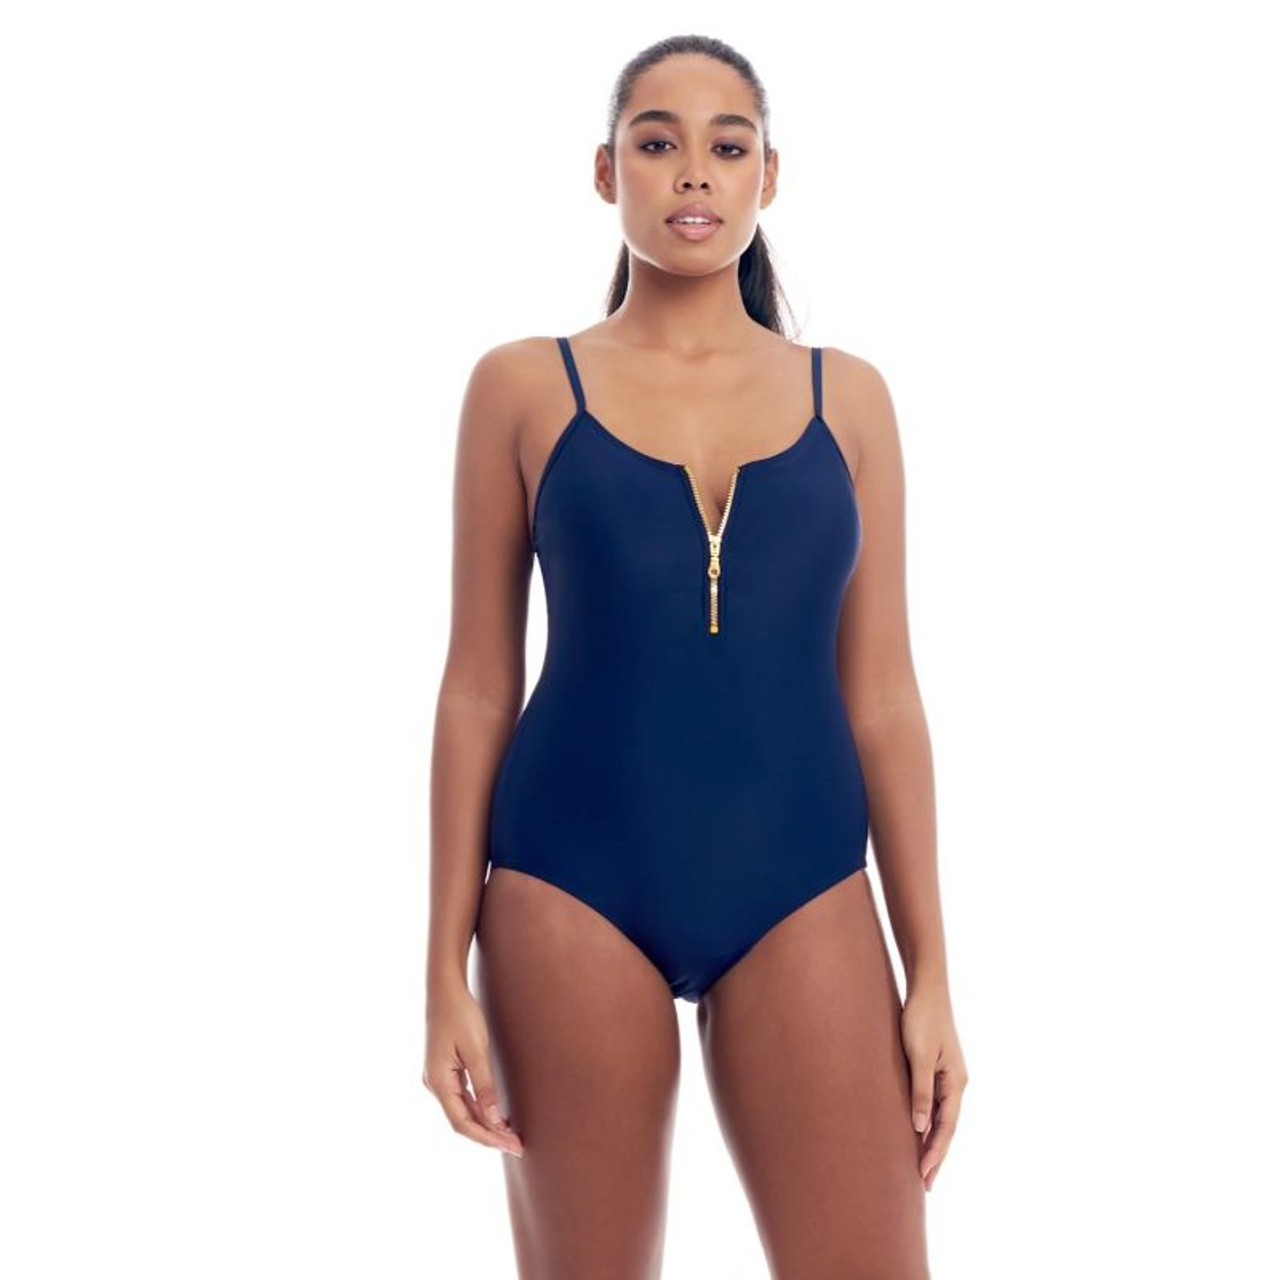 Cover Girl Women's One-Piece Swimsuit with Zip Up Front